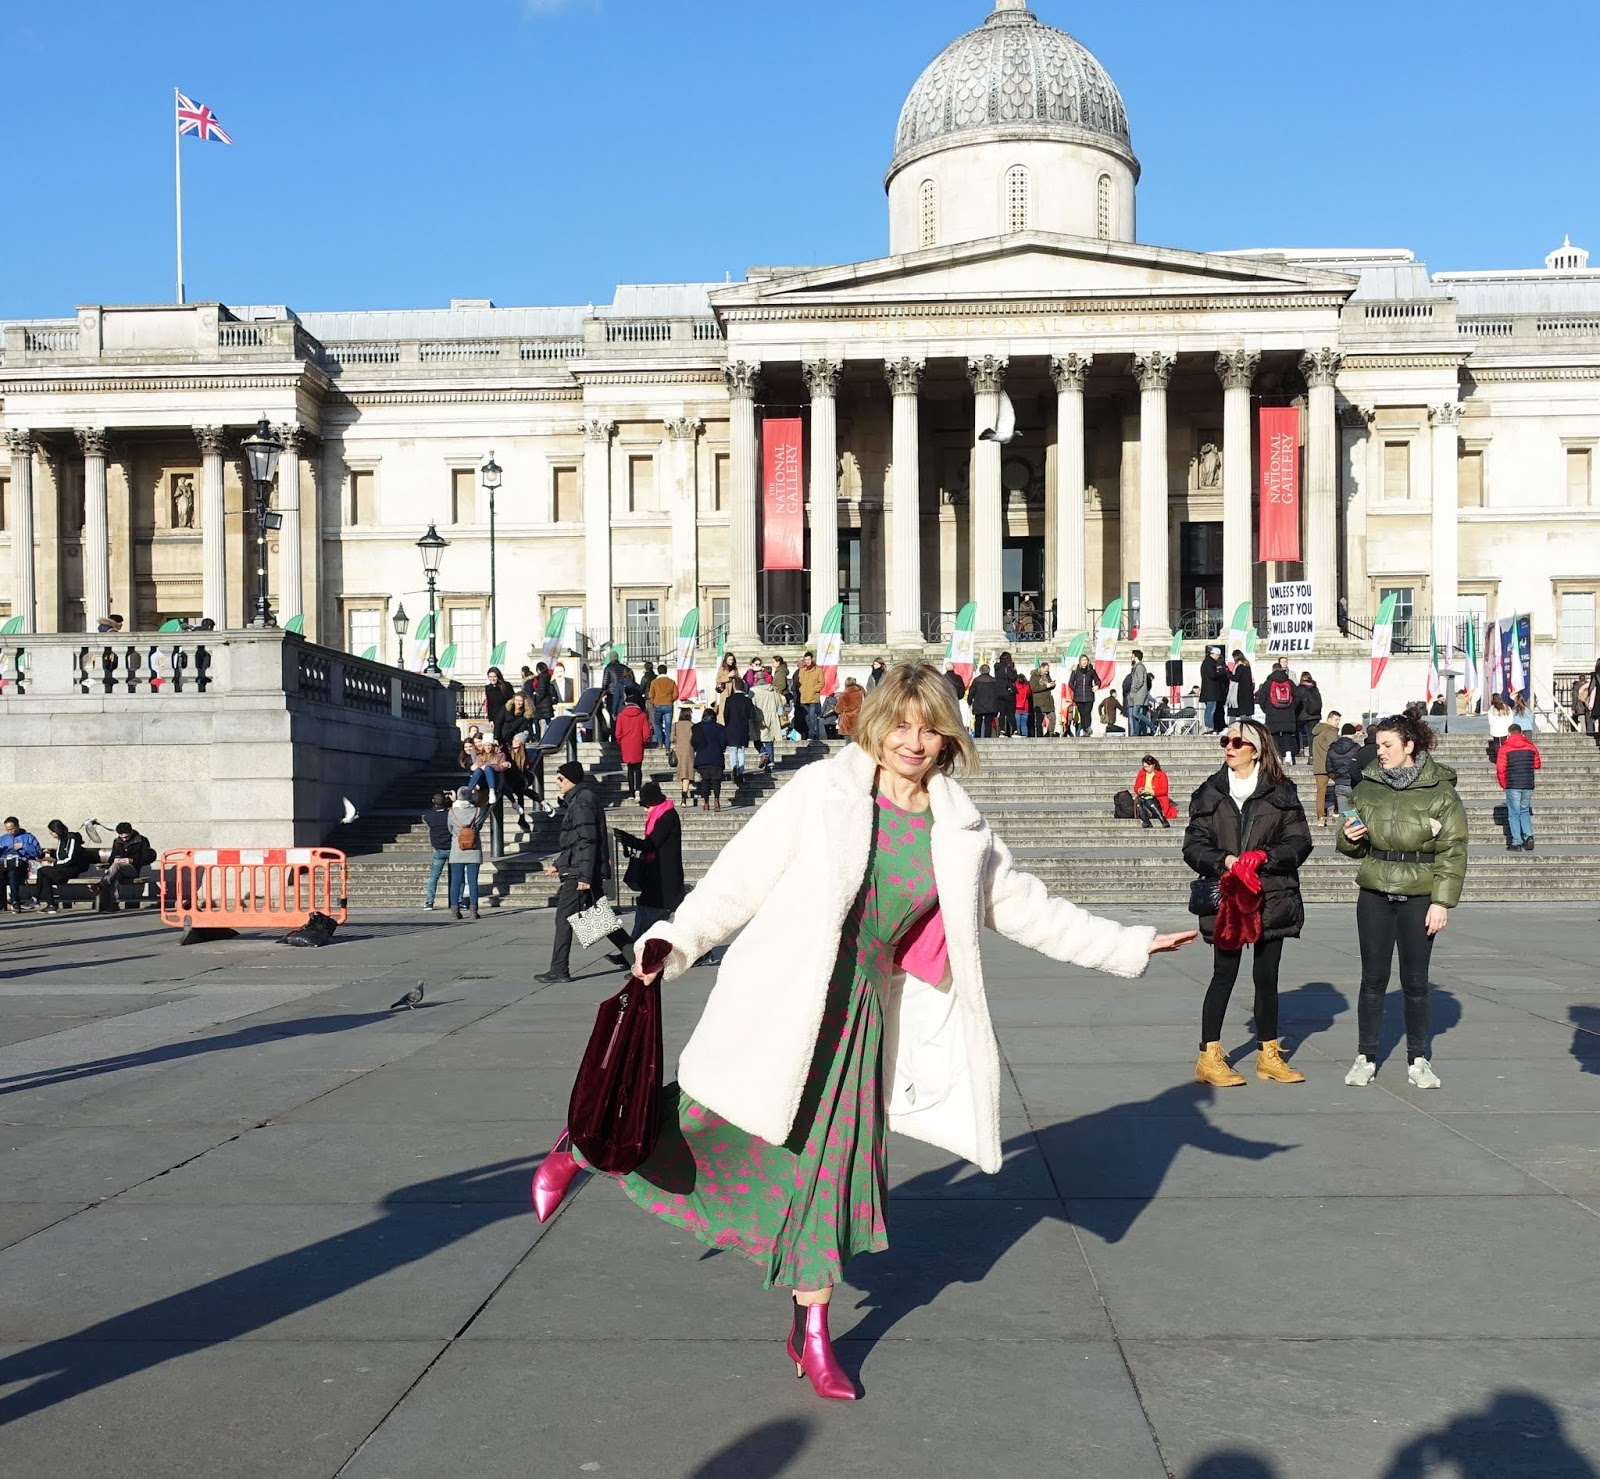 Over 50s blogger Gail Hanlon from Is This Mutton? in pink boots and green and pink dress in Trafalgar Square